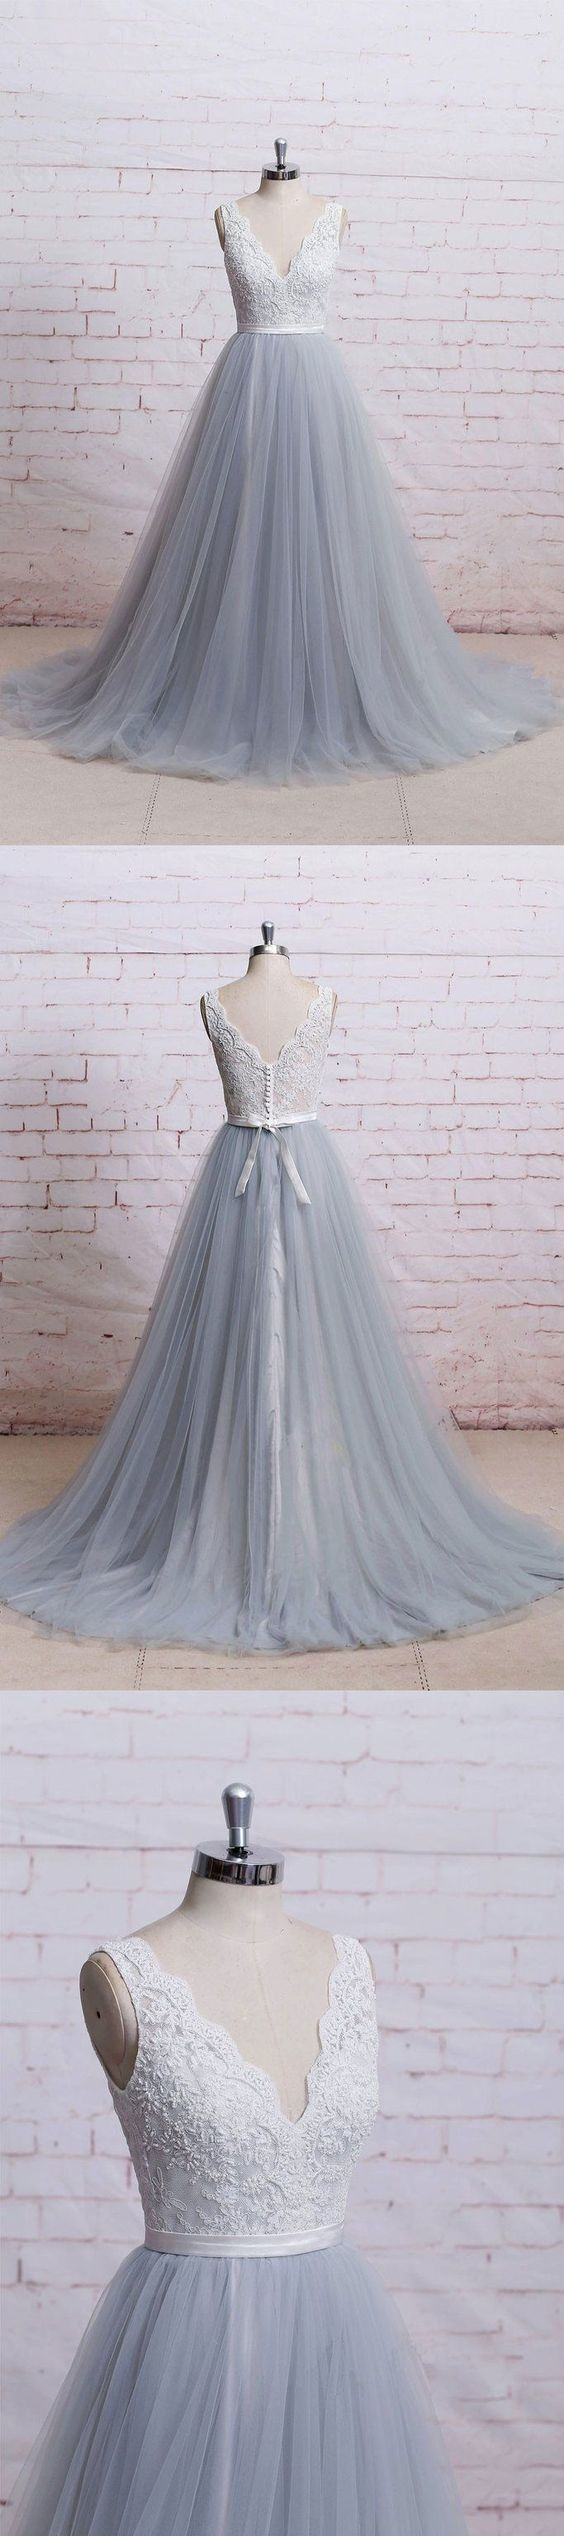 Lace top grey tulle wedding dresses,v-neck by MeetBeauty on Zibbet